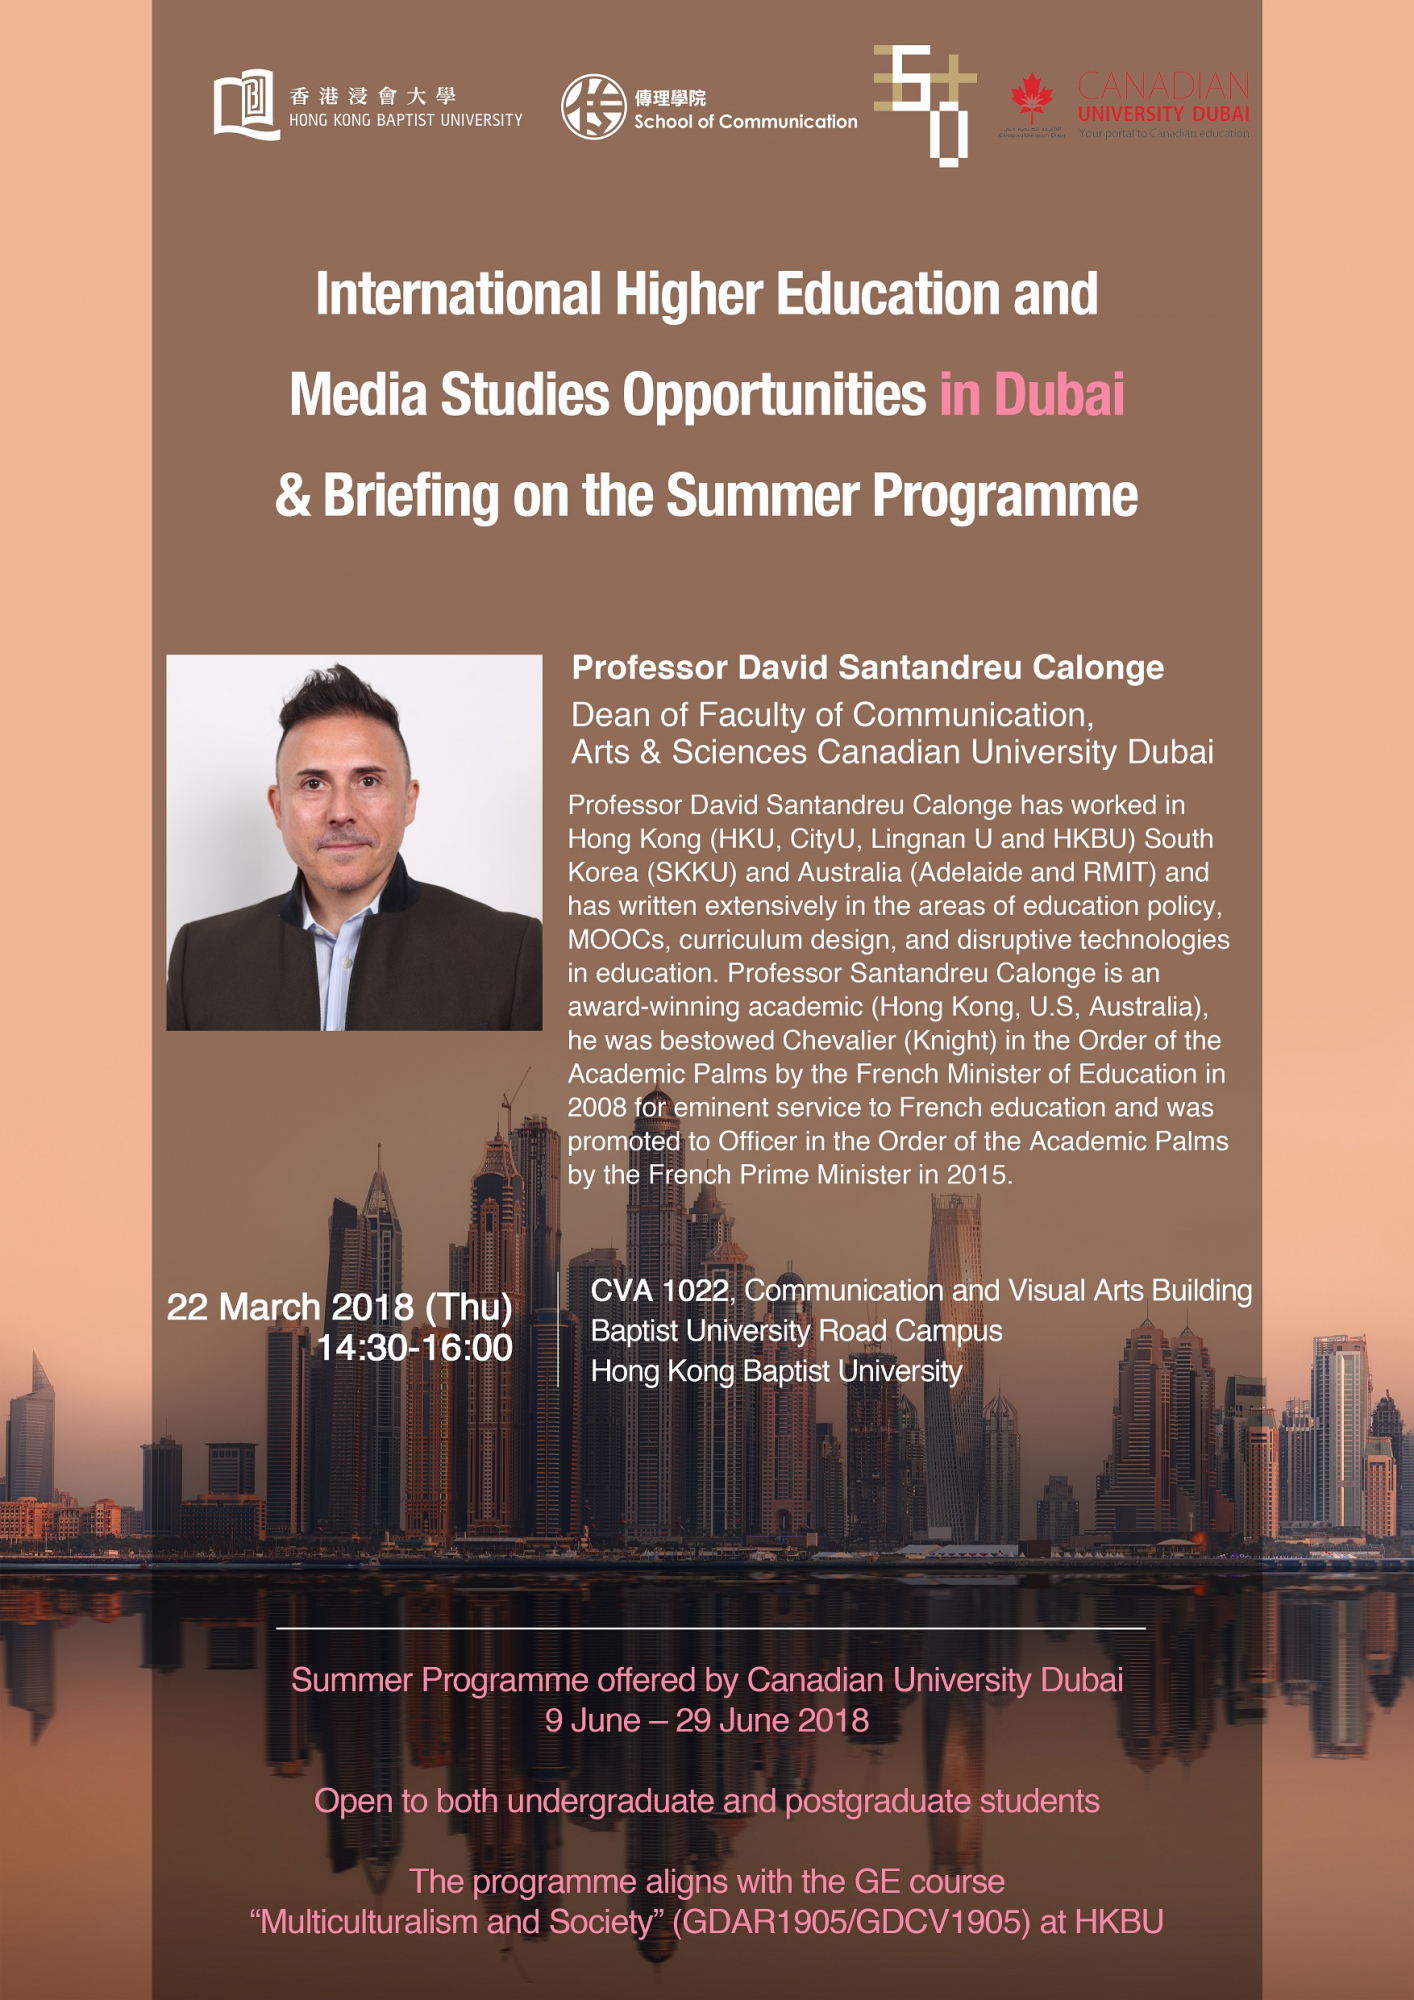 Canadian University Dubai Summer Course